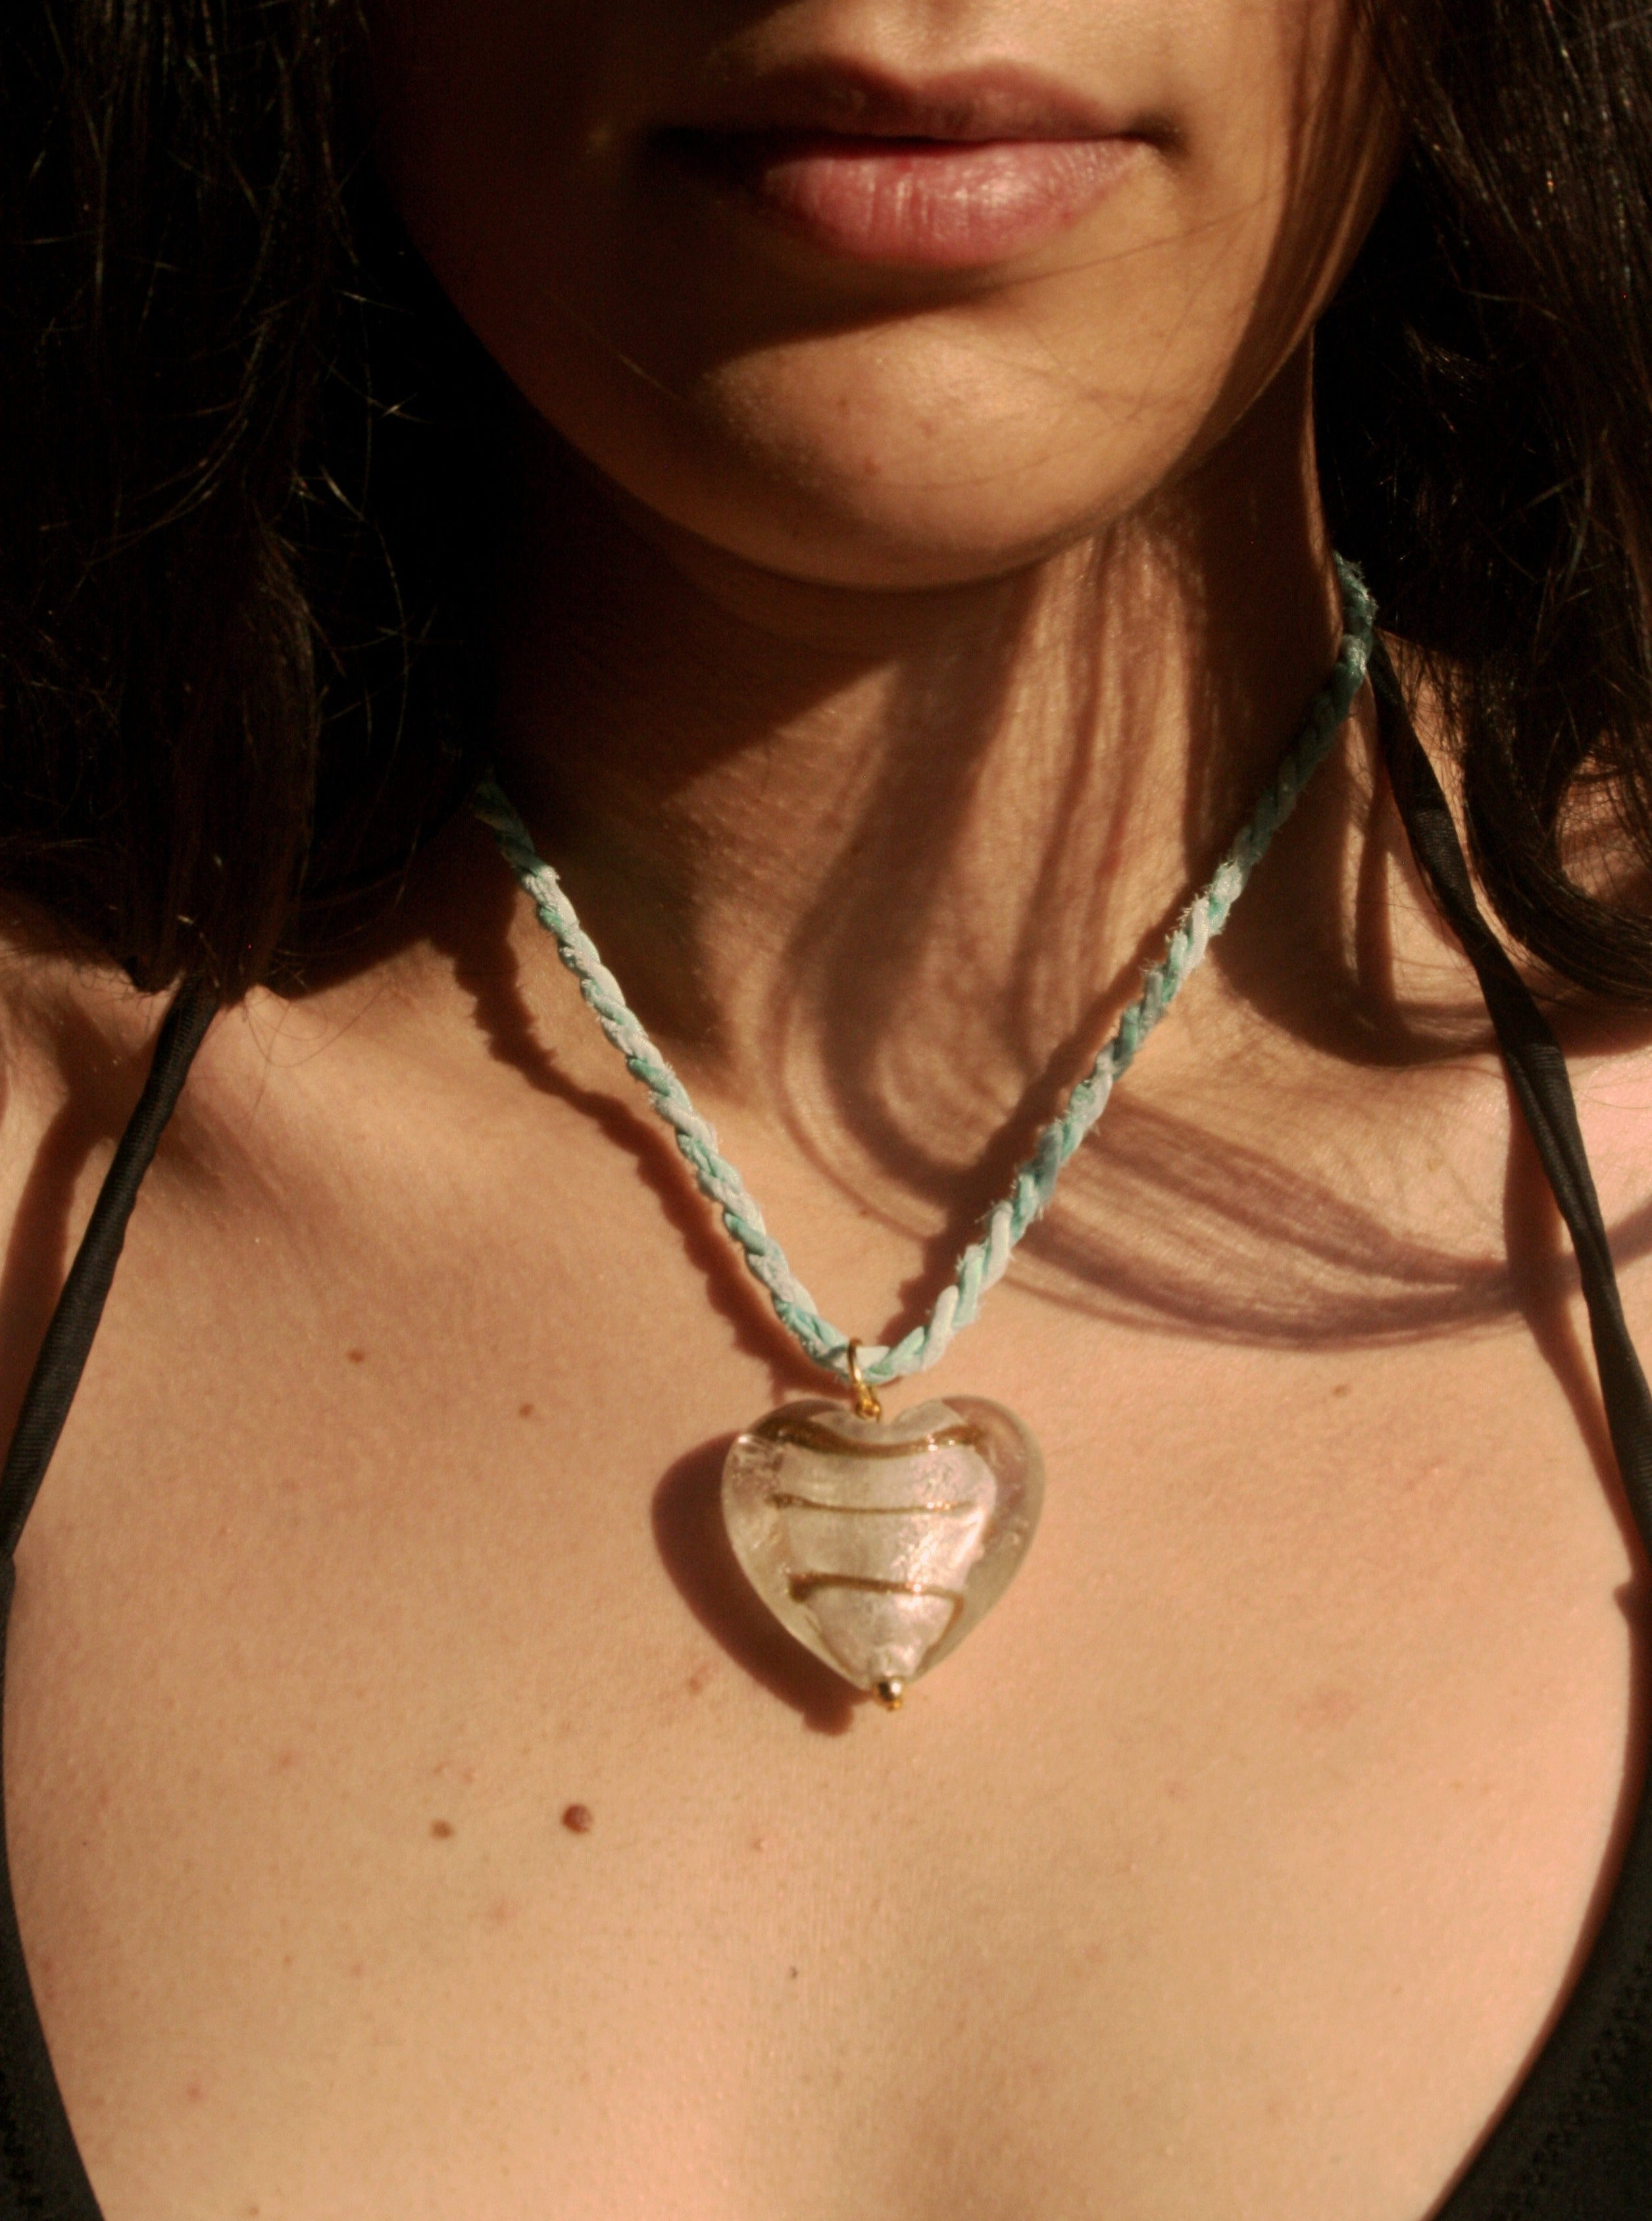 Necklace with a heartshaped glass pendant on a turquoise silk rope. Handmade to order.